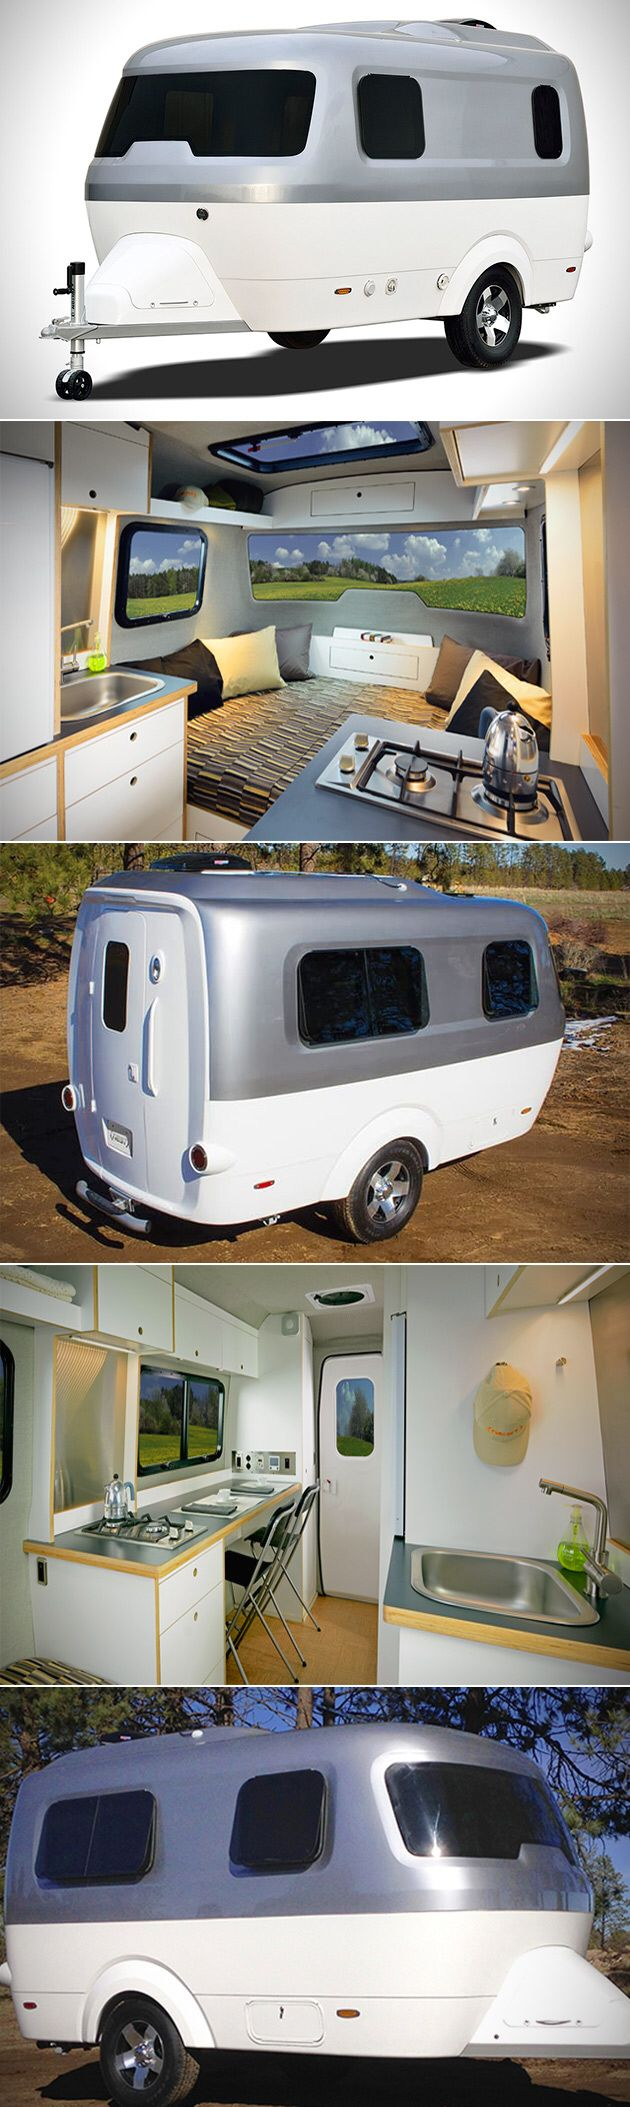 34 Best My New Hobby Images On Pinterest Mobile Home Airstream Trailer Light Wiring Harness 4 Flat 25ft To Redo Lights Nest Has A Kitchen Work Area Bed And Is Literally Tiny Wheels